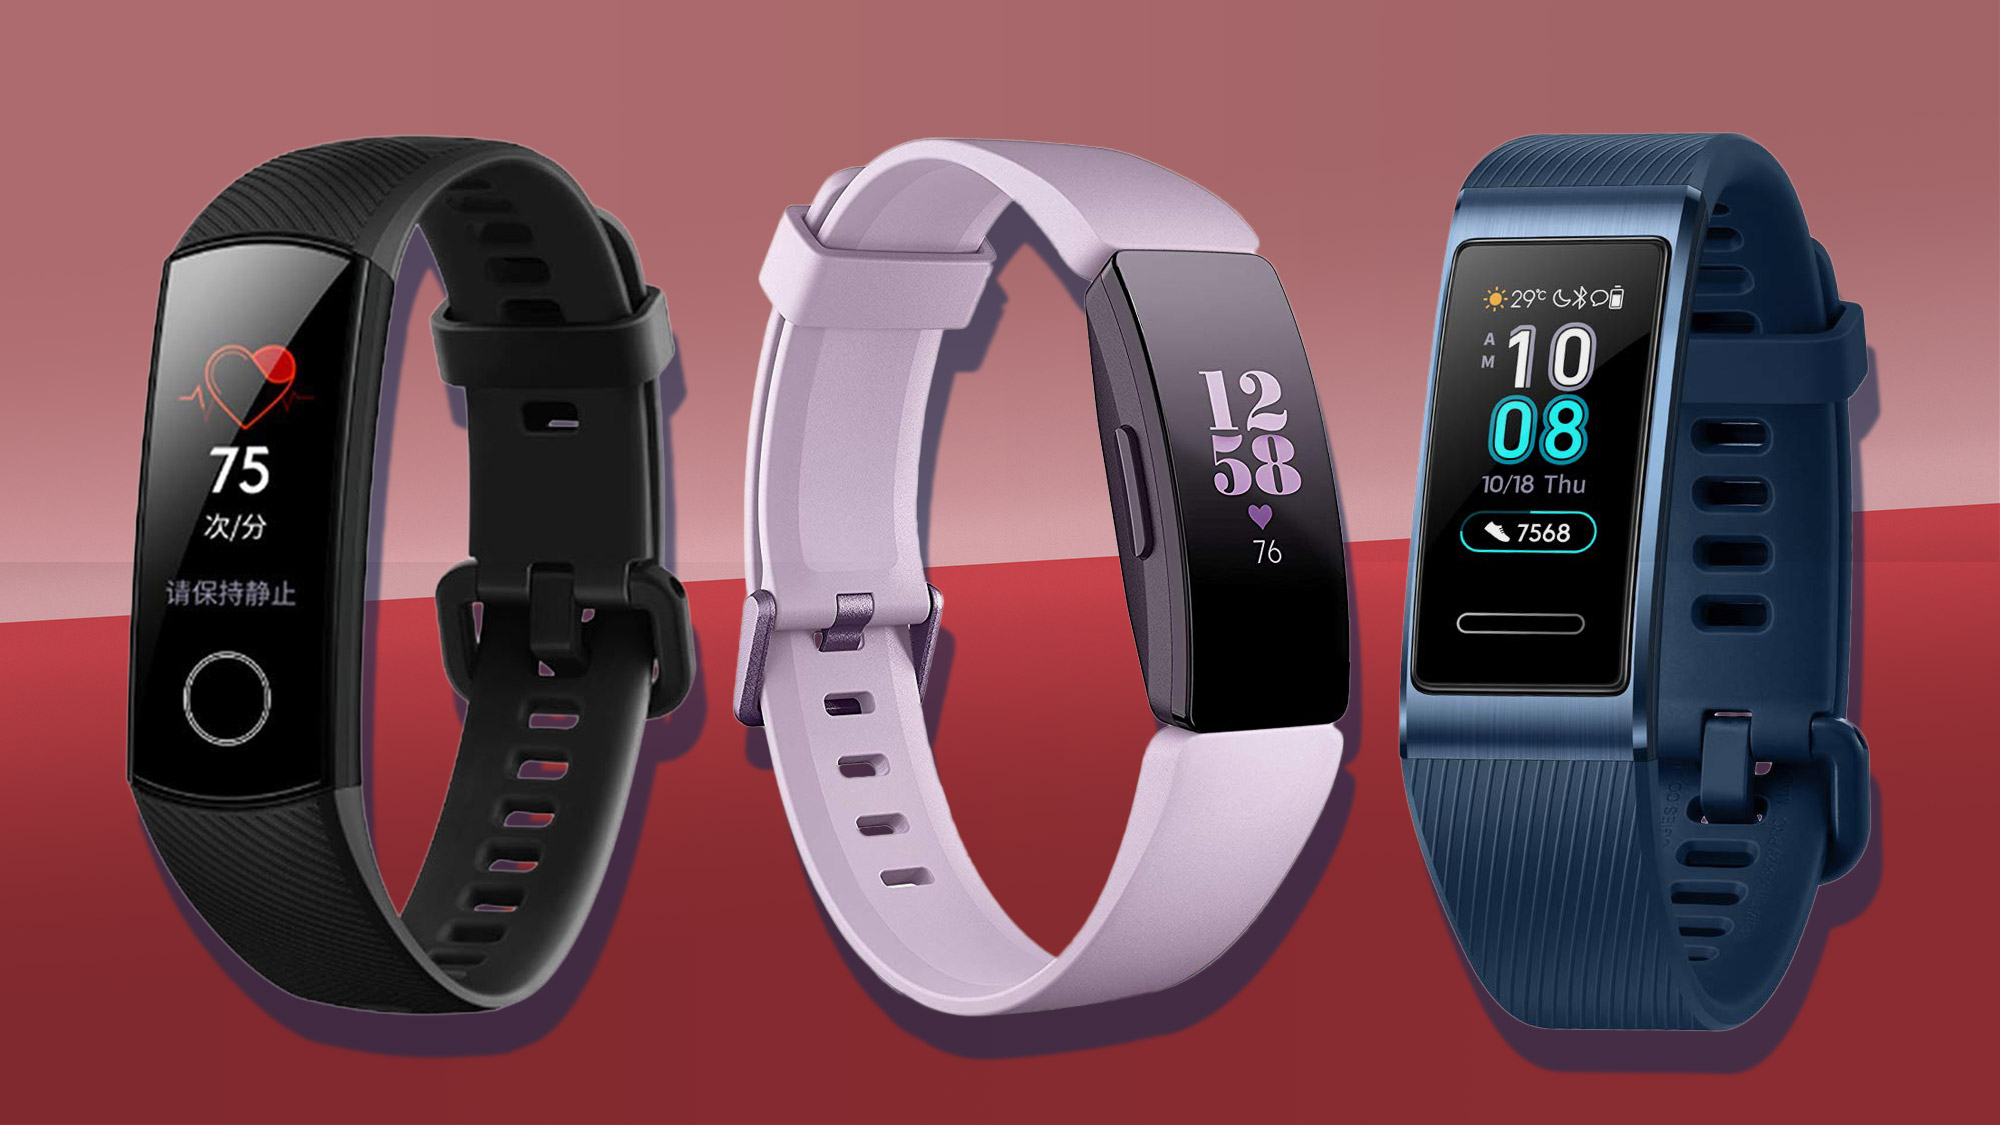 The best cheap fitness trackers 2020: the top affordable sport bands to keep you fit